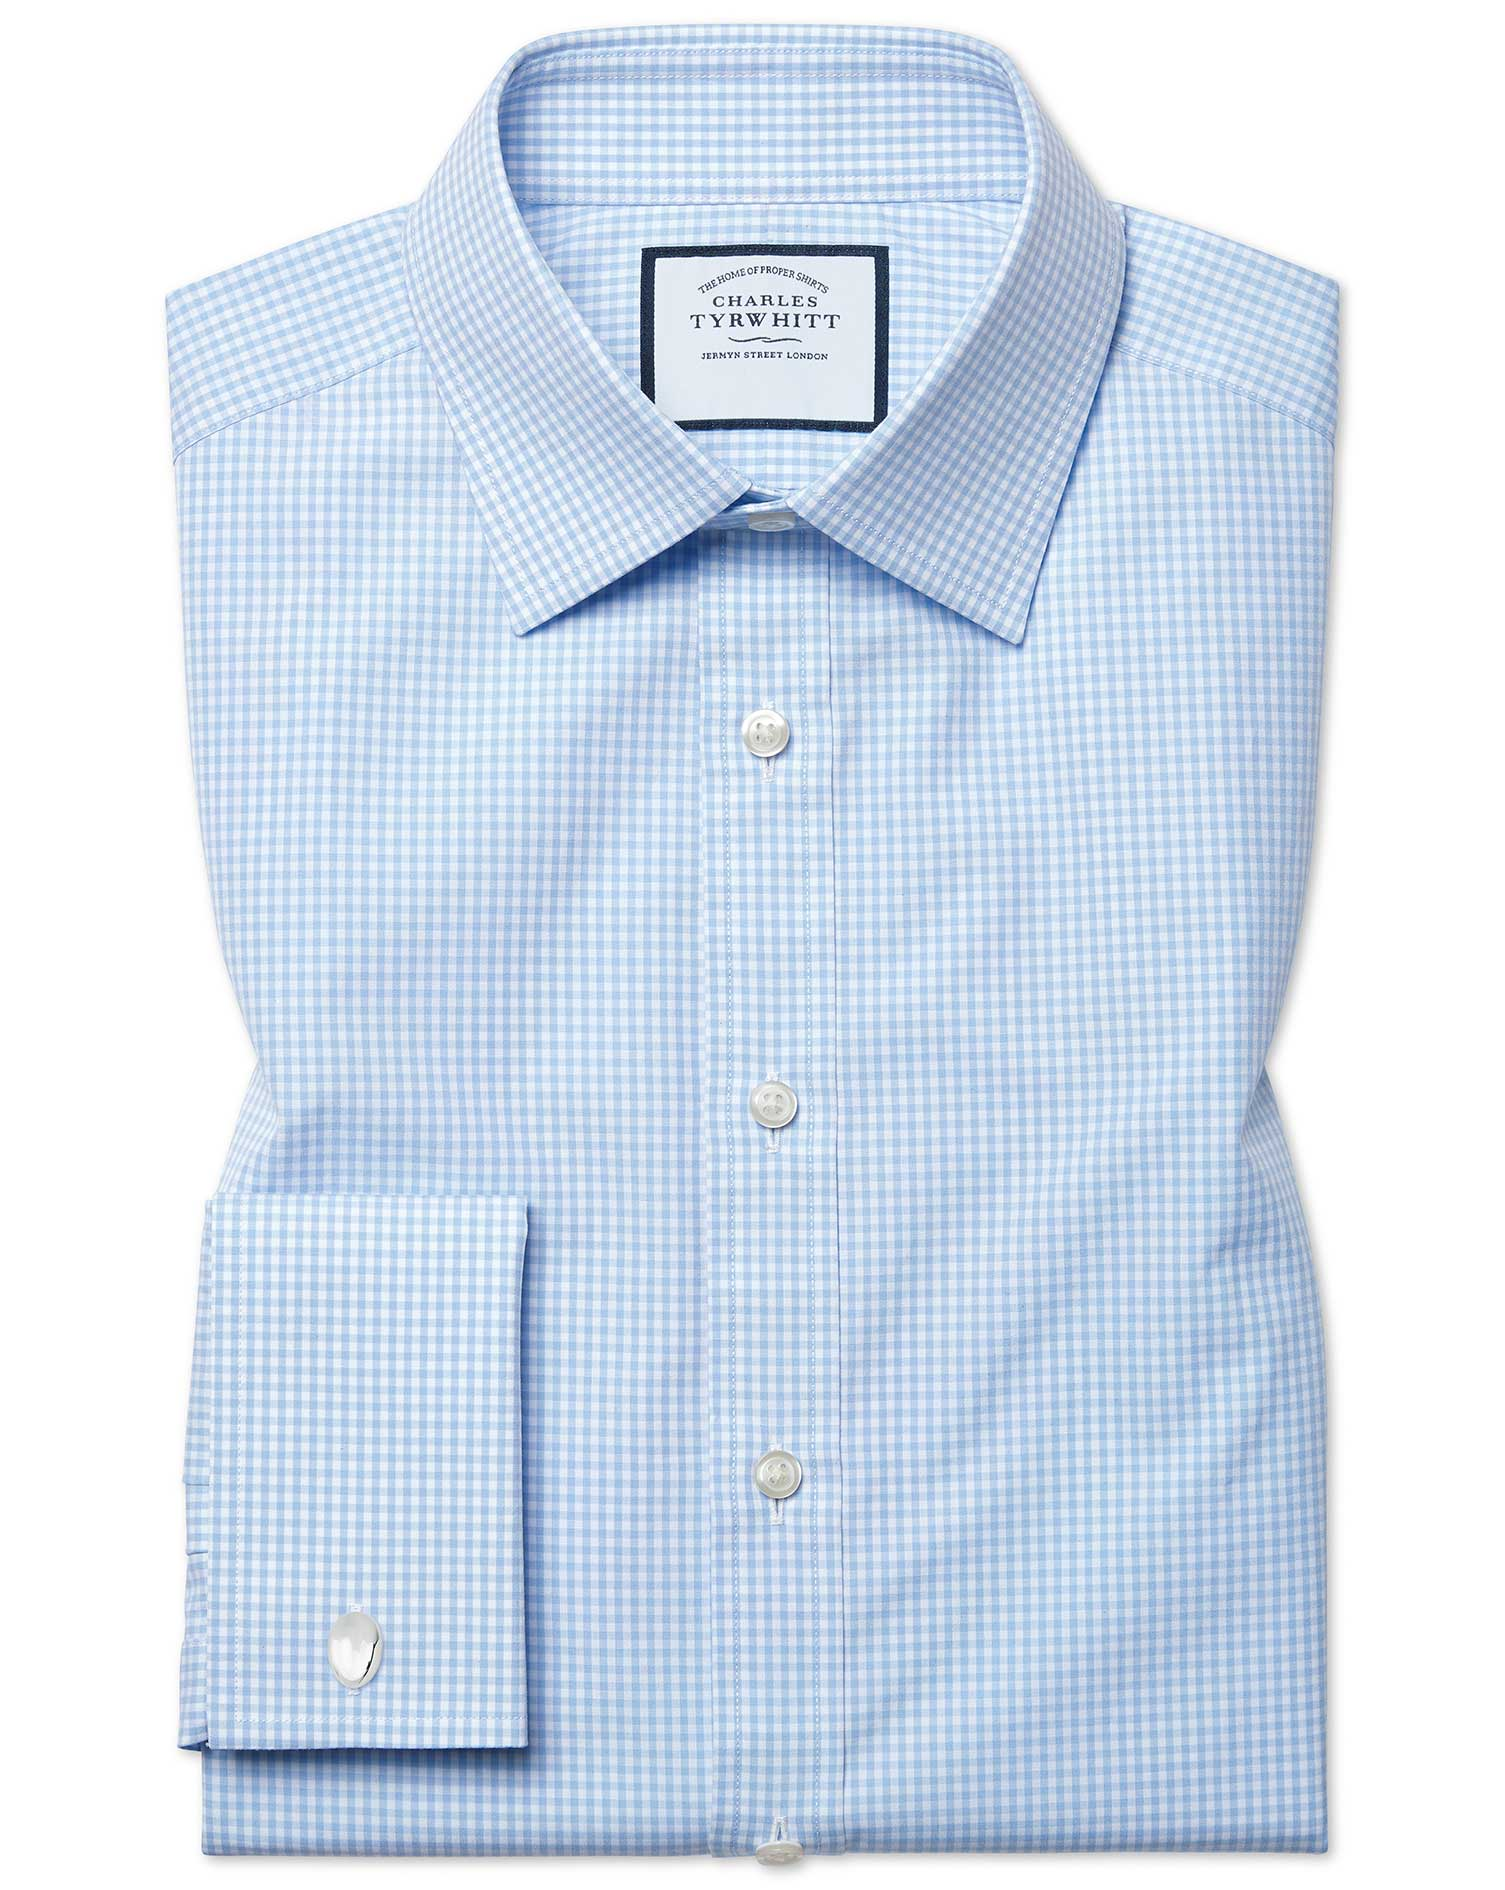 Extra Slim Fit Small Gingham Sky Blue Cotton Formal Shirt Double Cuff Size 16/33 by Charles Tyrwhitt